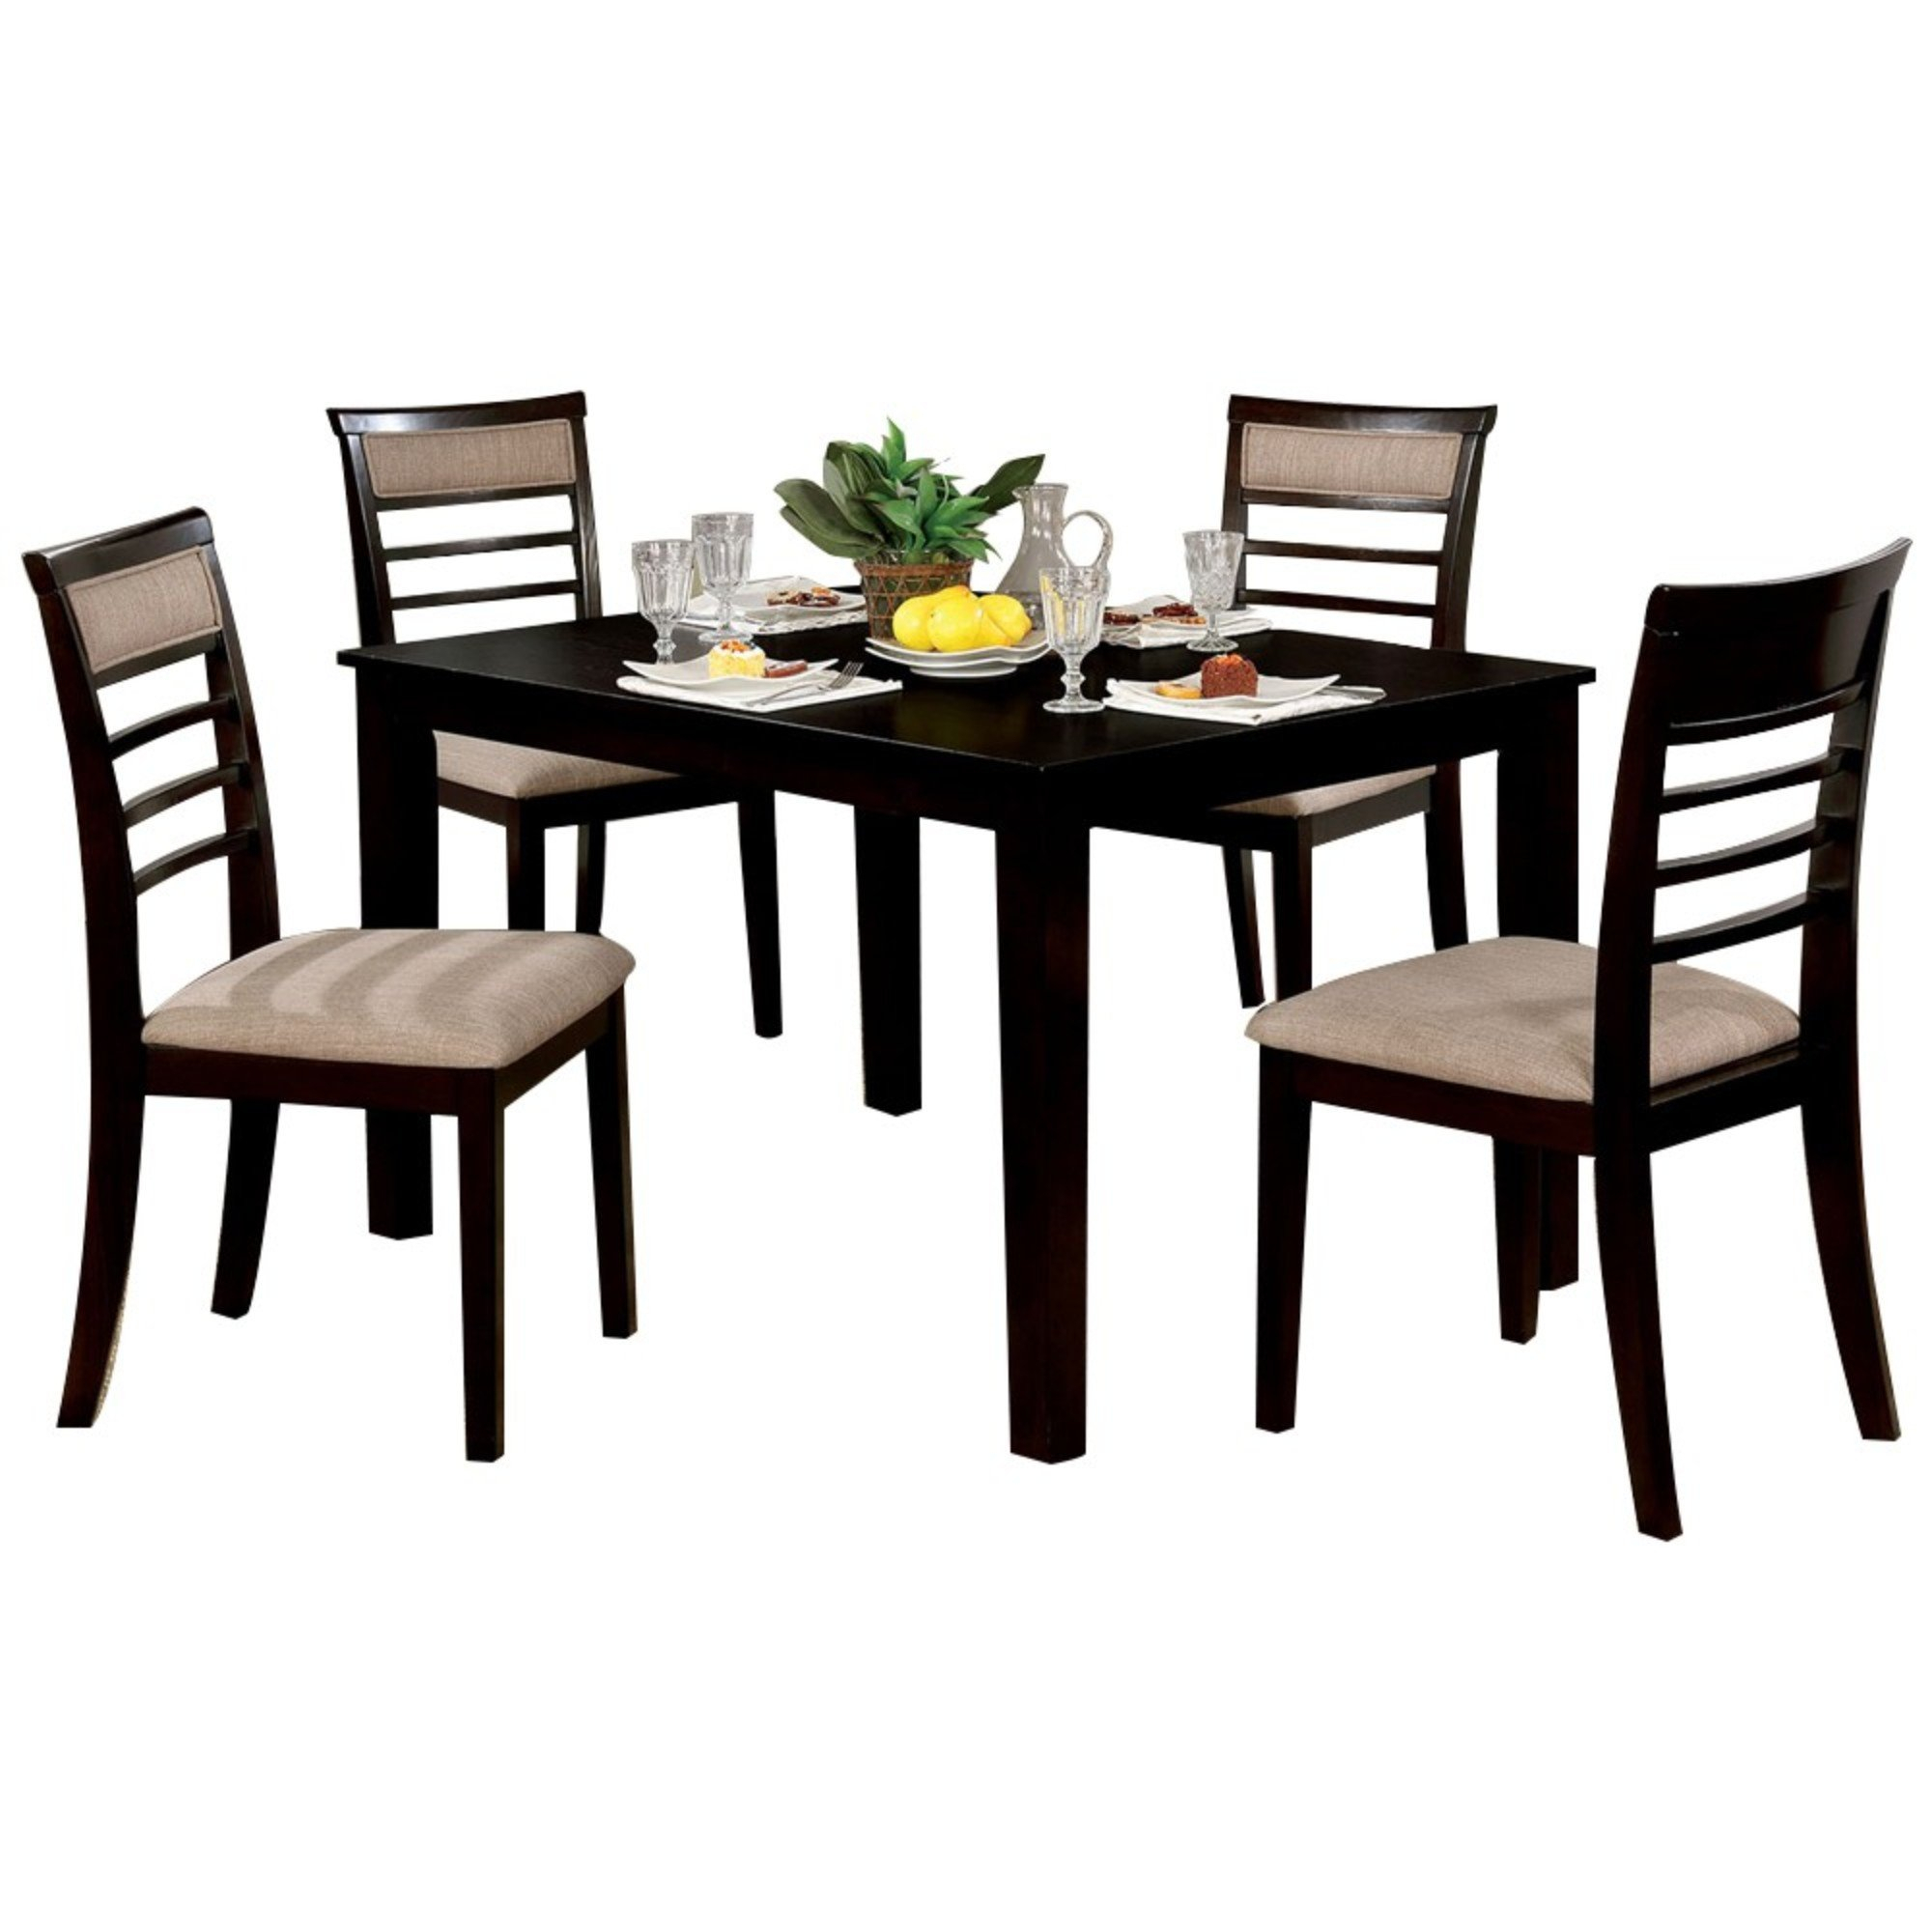 Hanska Wooden 5 Piece Counter Height Dining Table Set With Most Recently Released Hanska Wooden 5 Piece Counter Height Dining Table Sets (Set Of 5) (View 1 of 20)